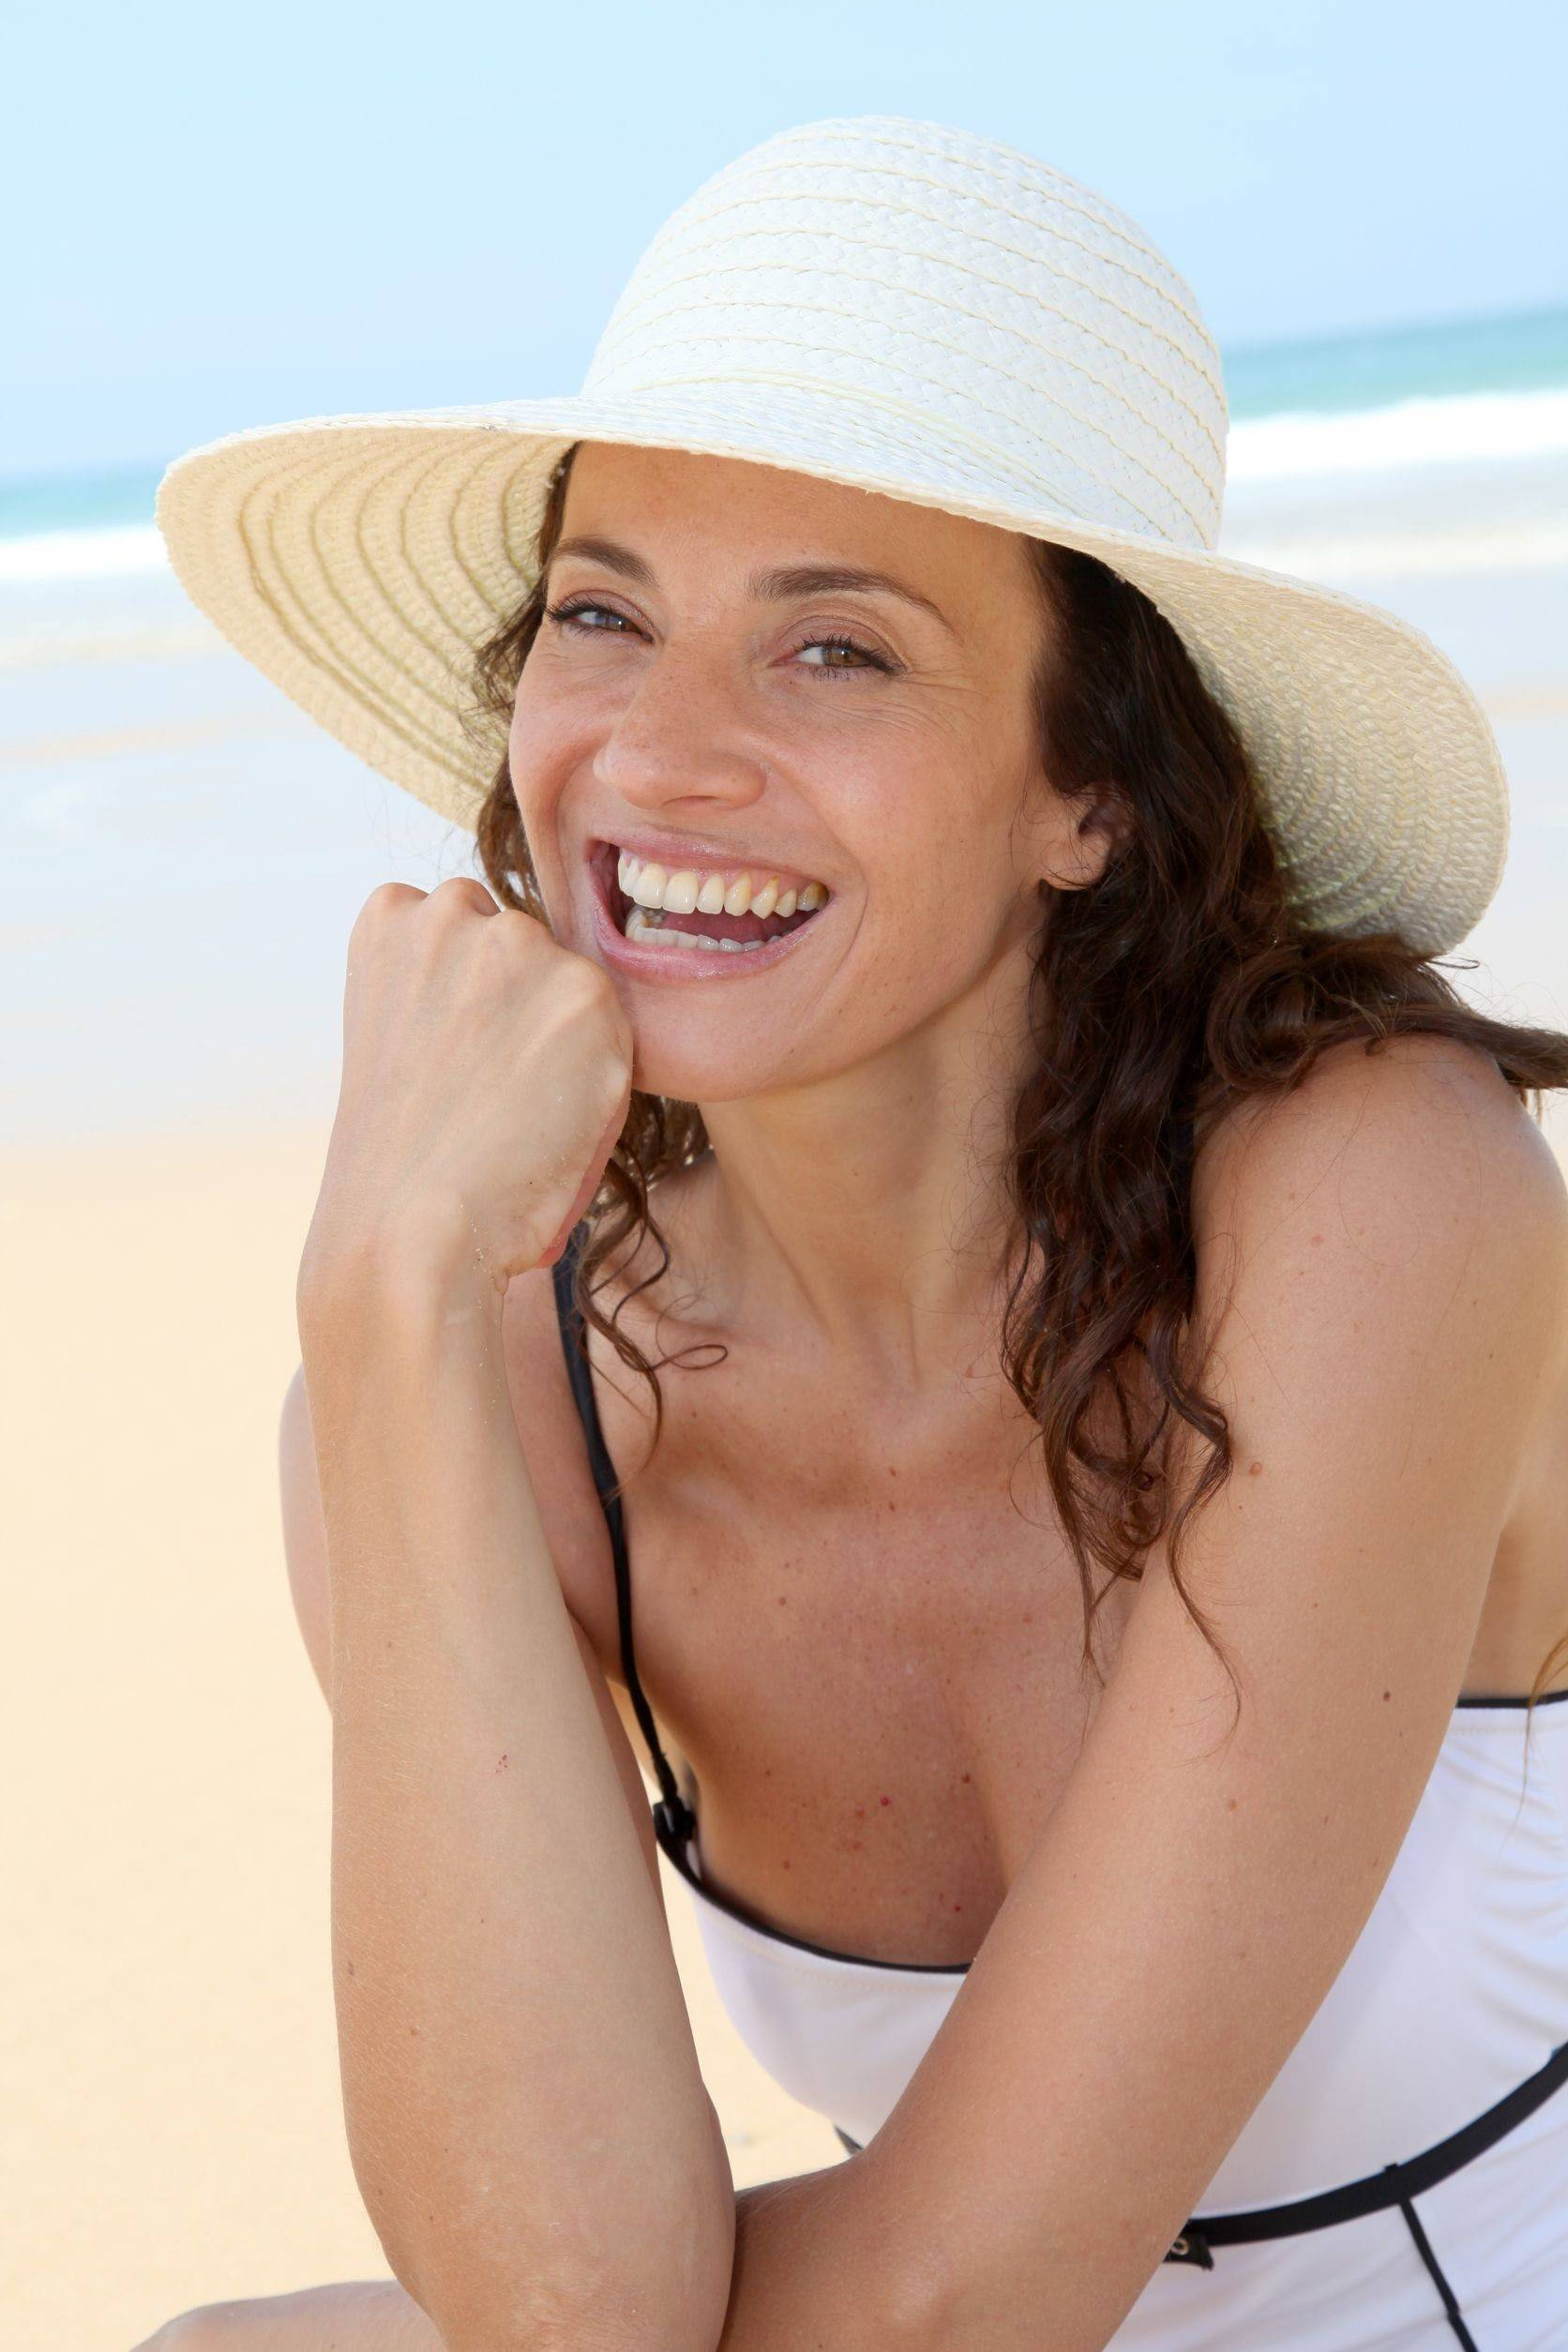 A wide-brim hat can reduce exposure to the sun.